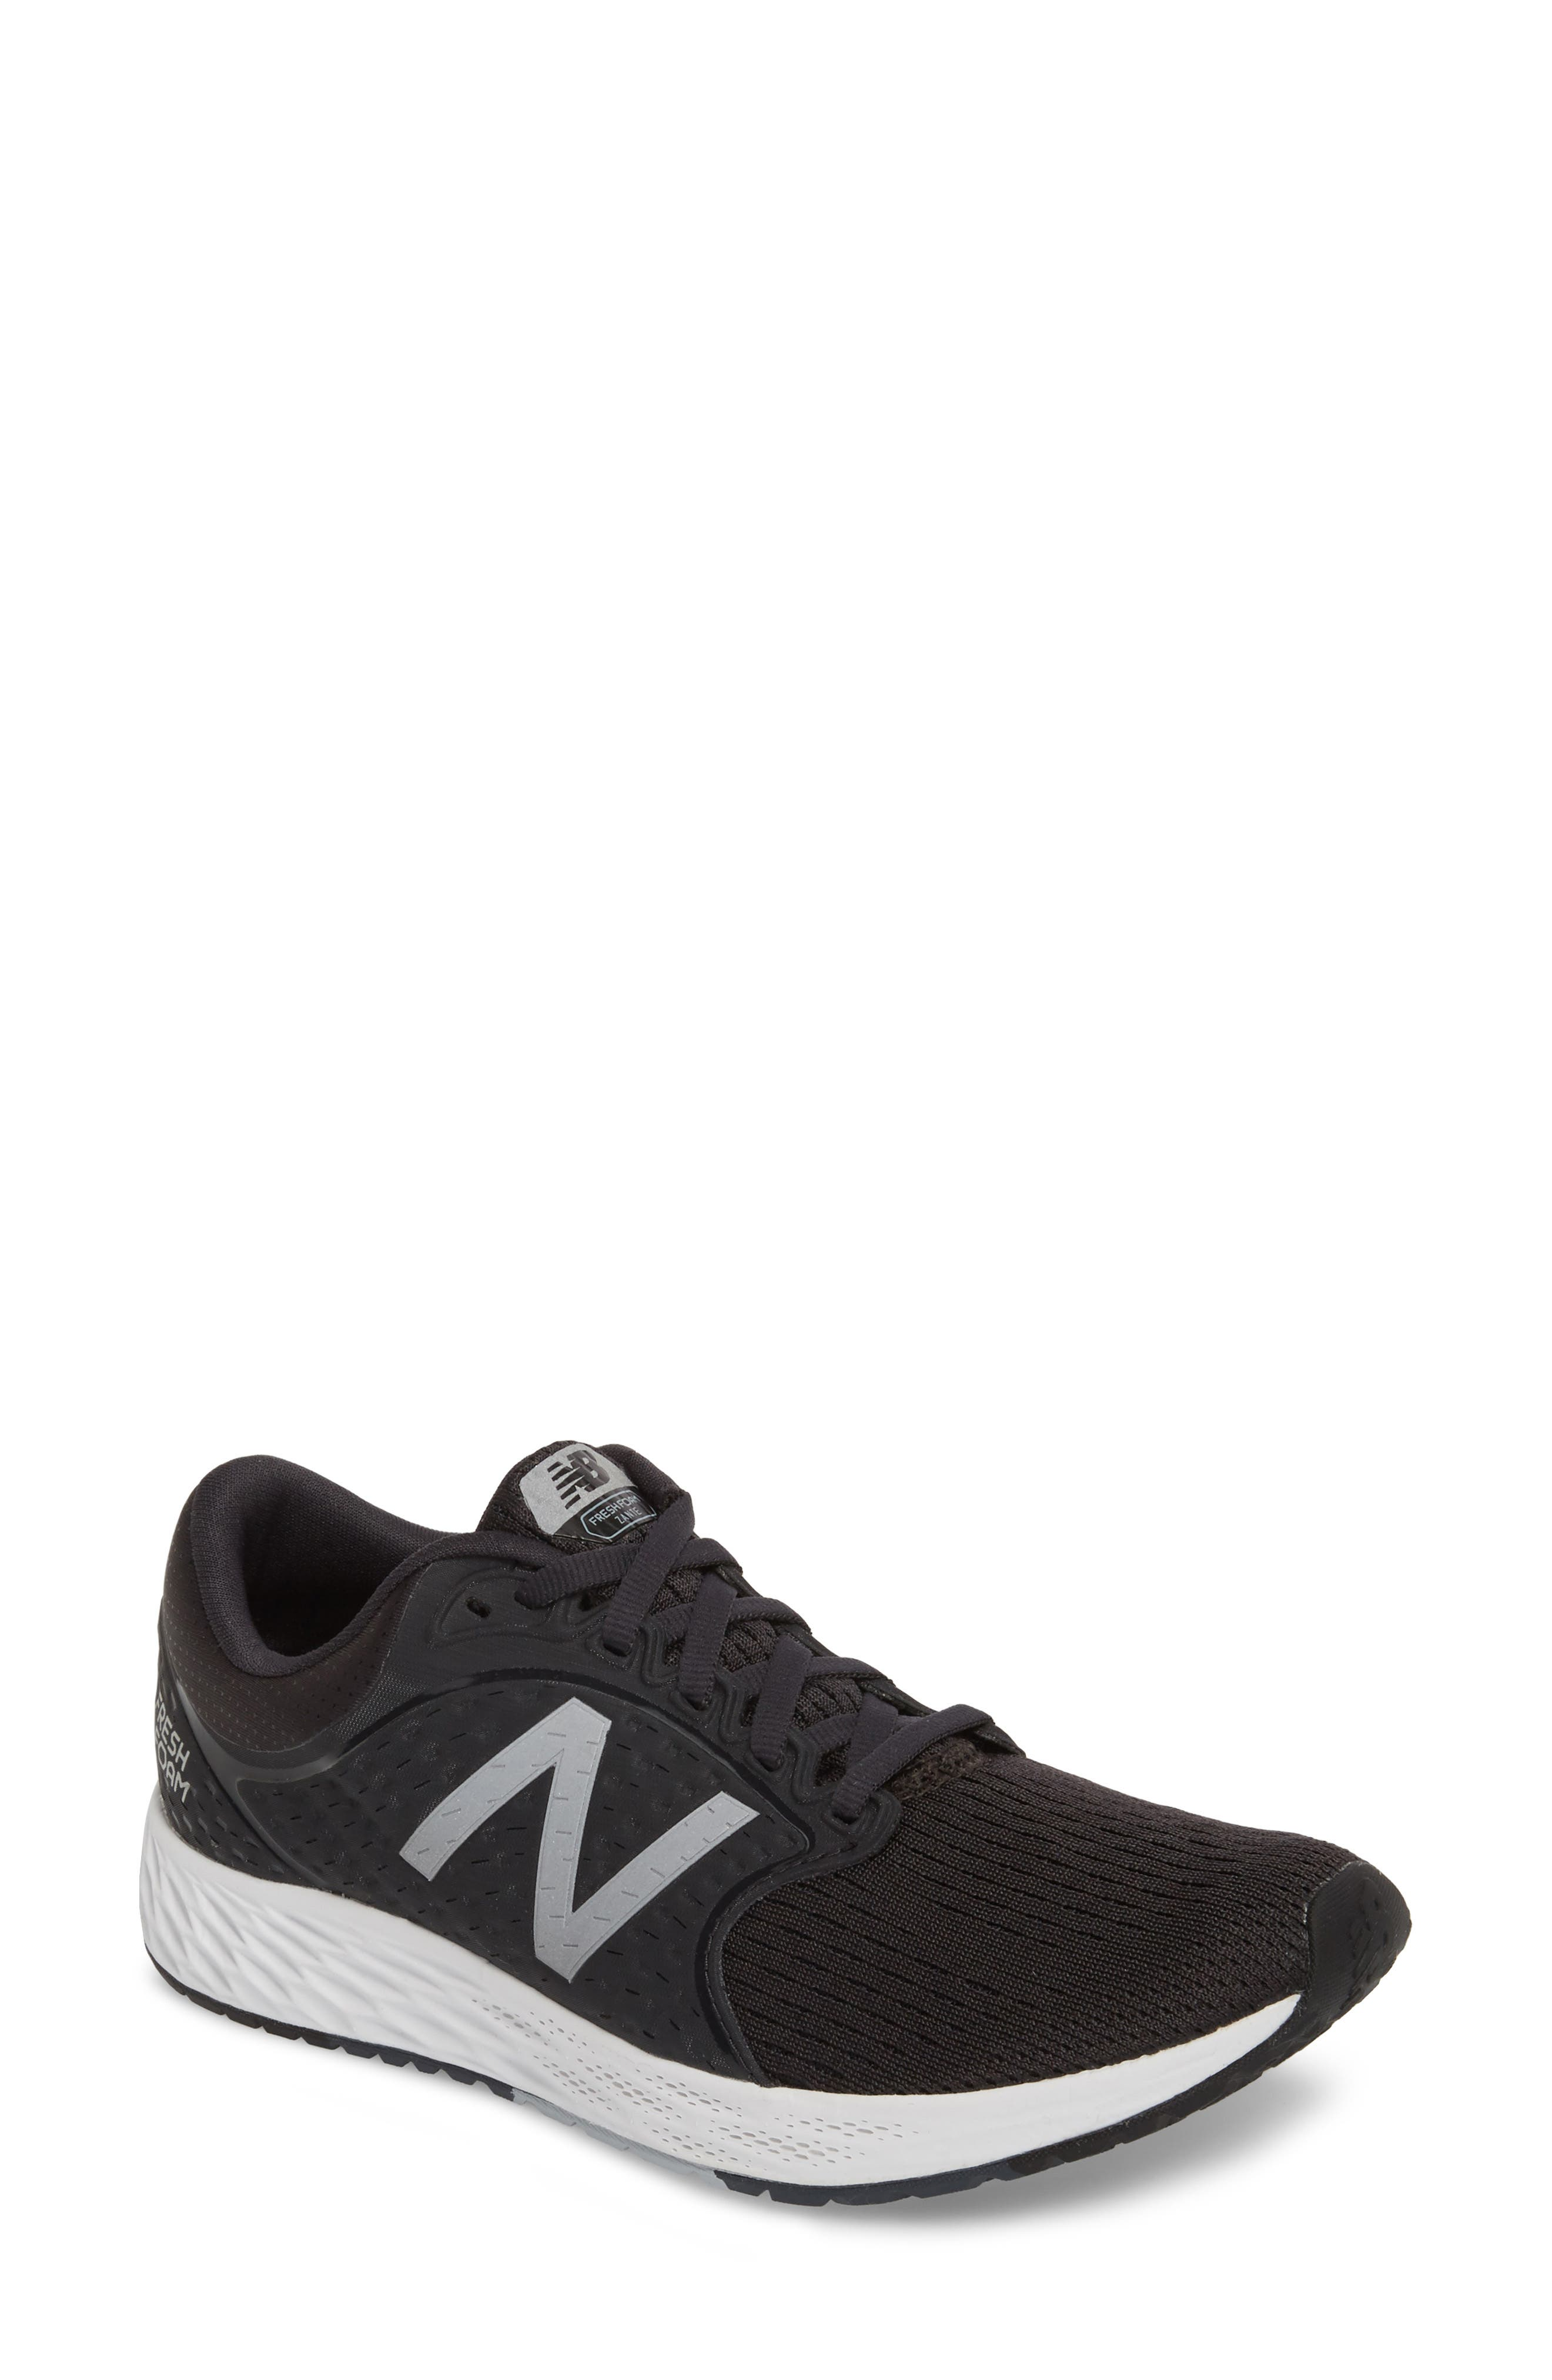 Main Image - New Balance Fresh Foam Zante v4 Running Shoe (Women)